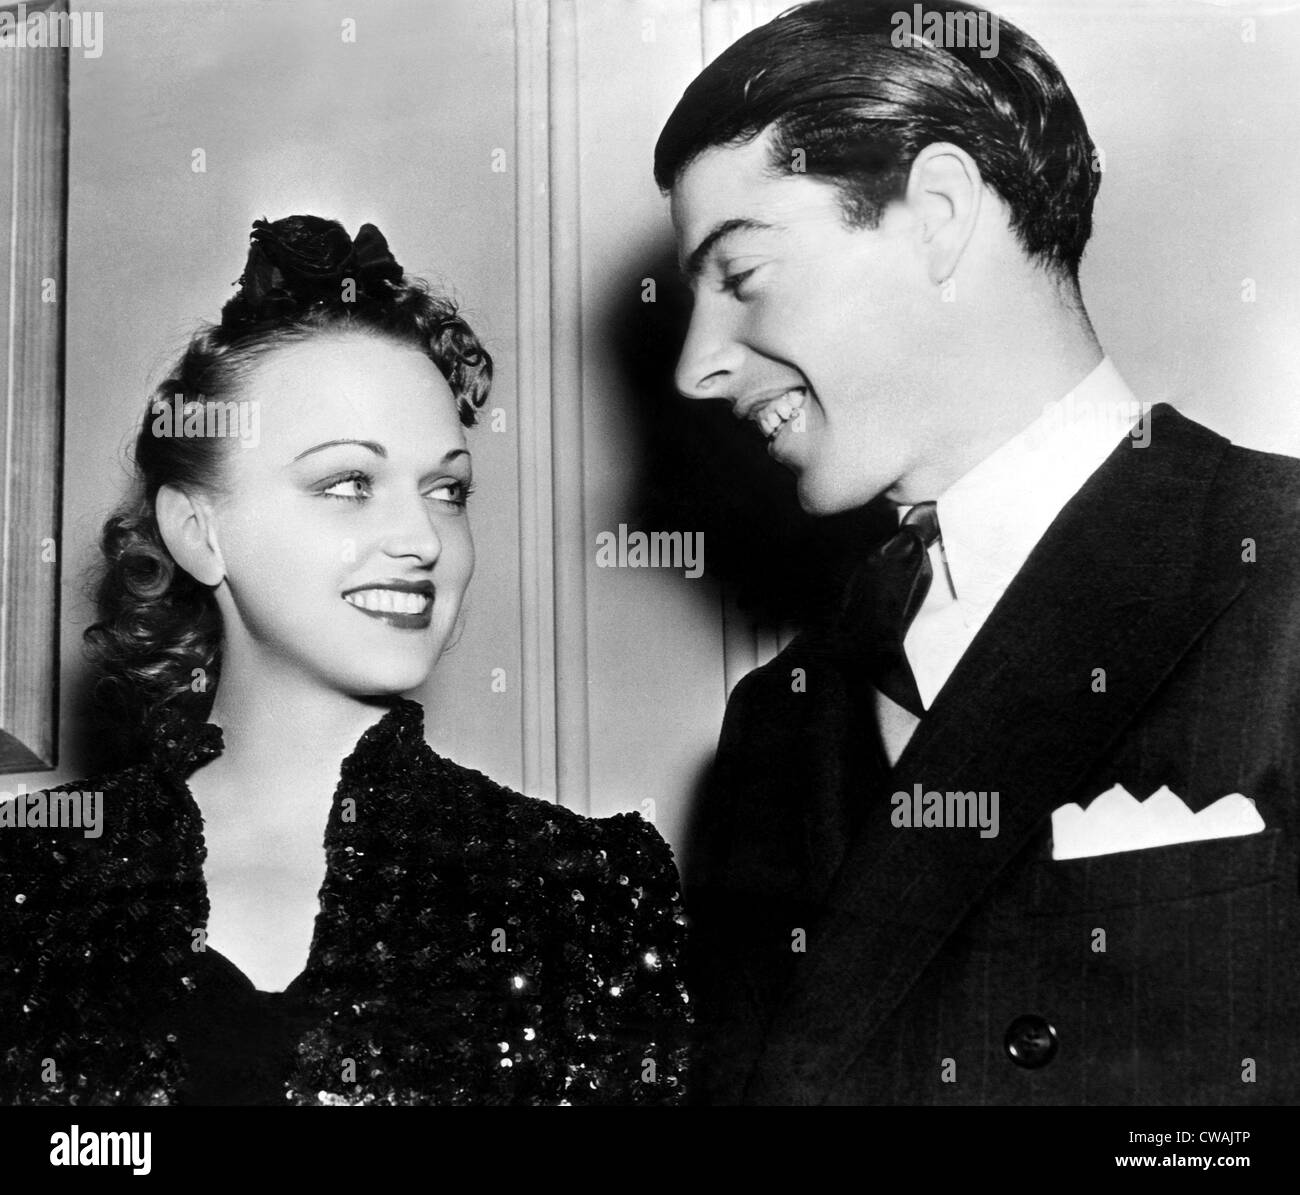 THE HOUSE OF FEAR, (aka SHERLOCK HOLMES AND THE HOUSE OF FEAR), Dorothy Arnold, visitor Joe DiMaggio, on-set, 1941. - Stock Image